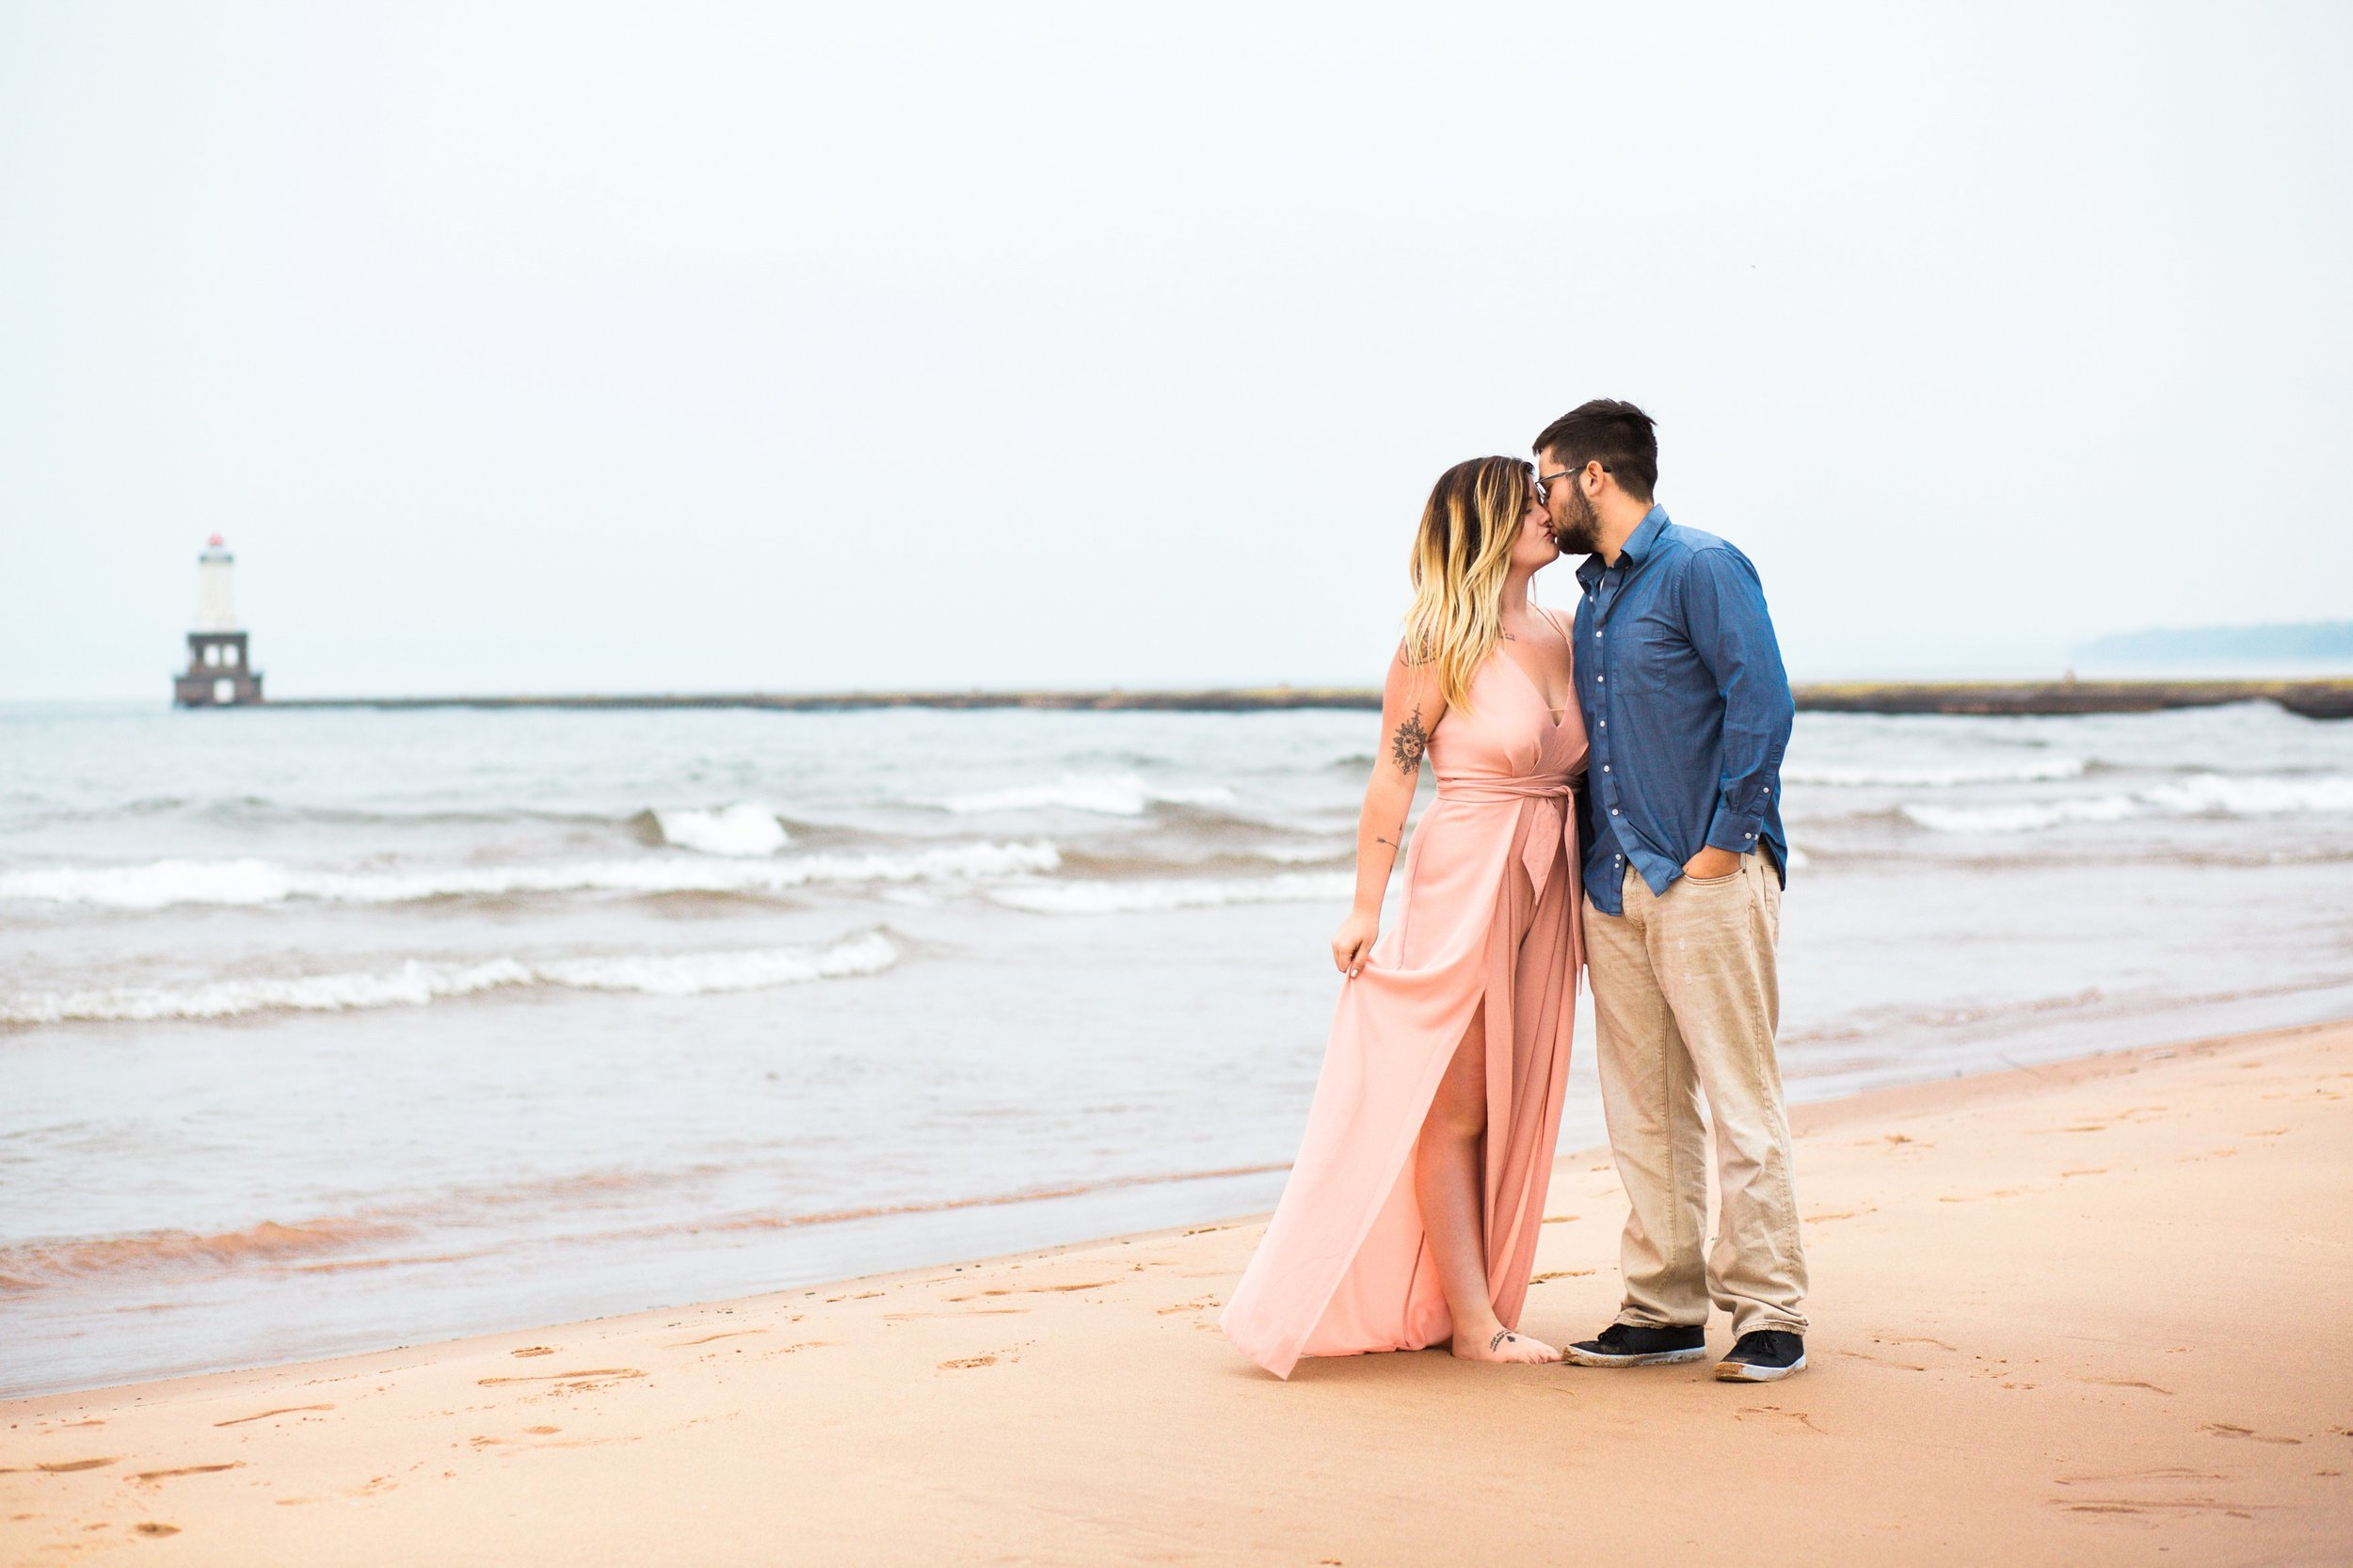 Lake Superior White City Beach Upper Michigan Engagement Photo Session by Seattle Engagement Photographer Janelle Elaine Photography.jpg